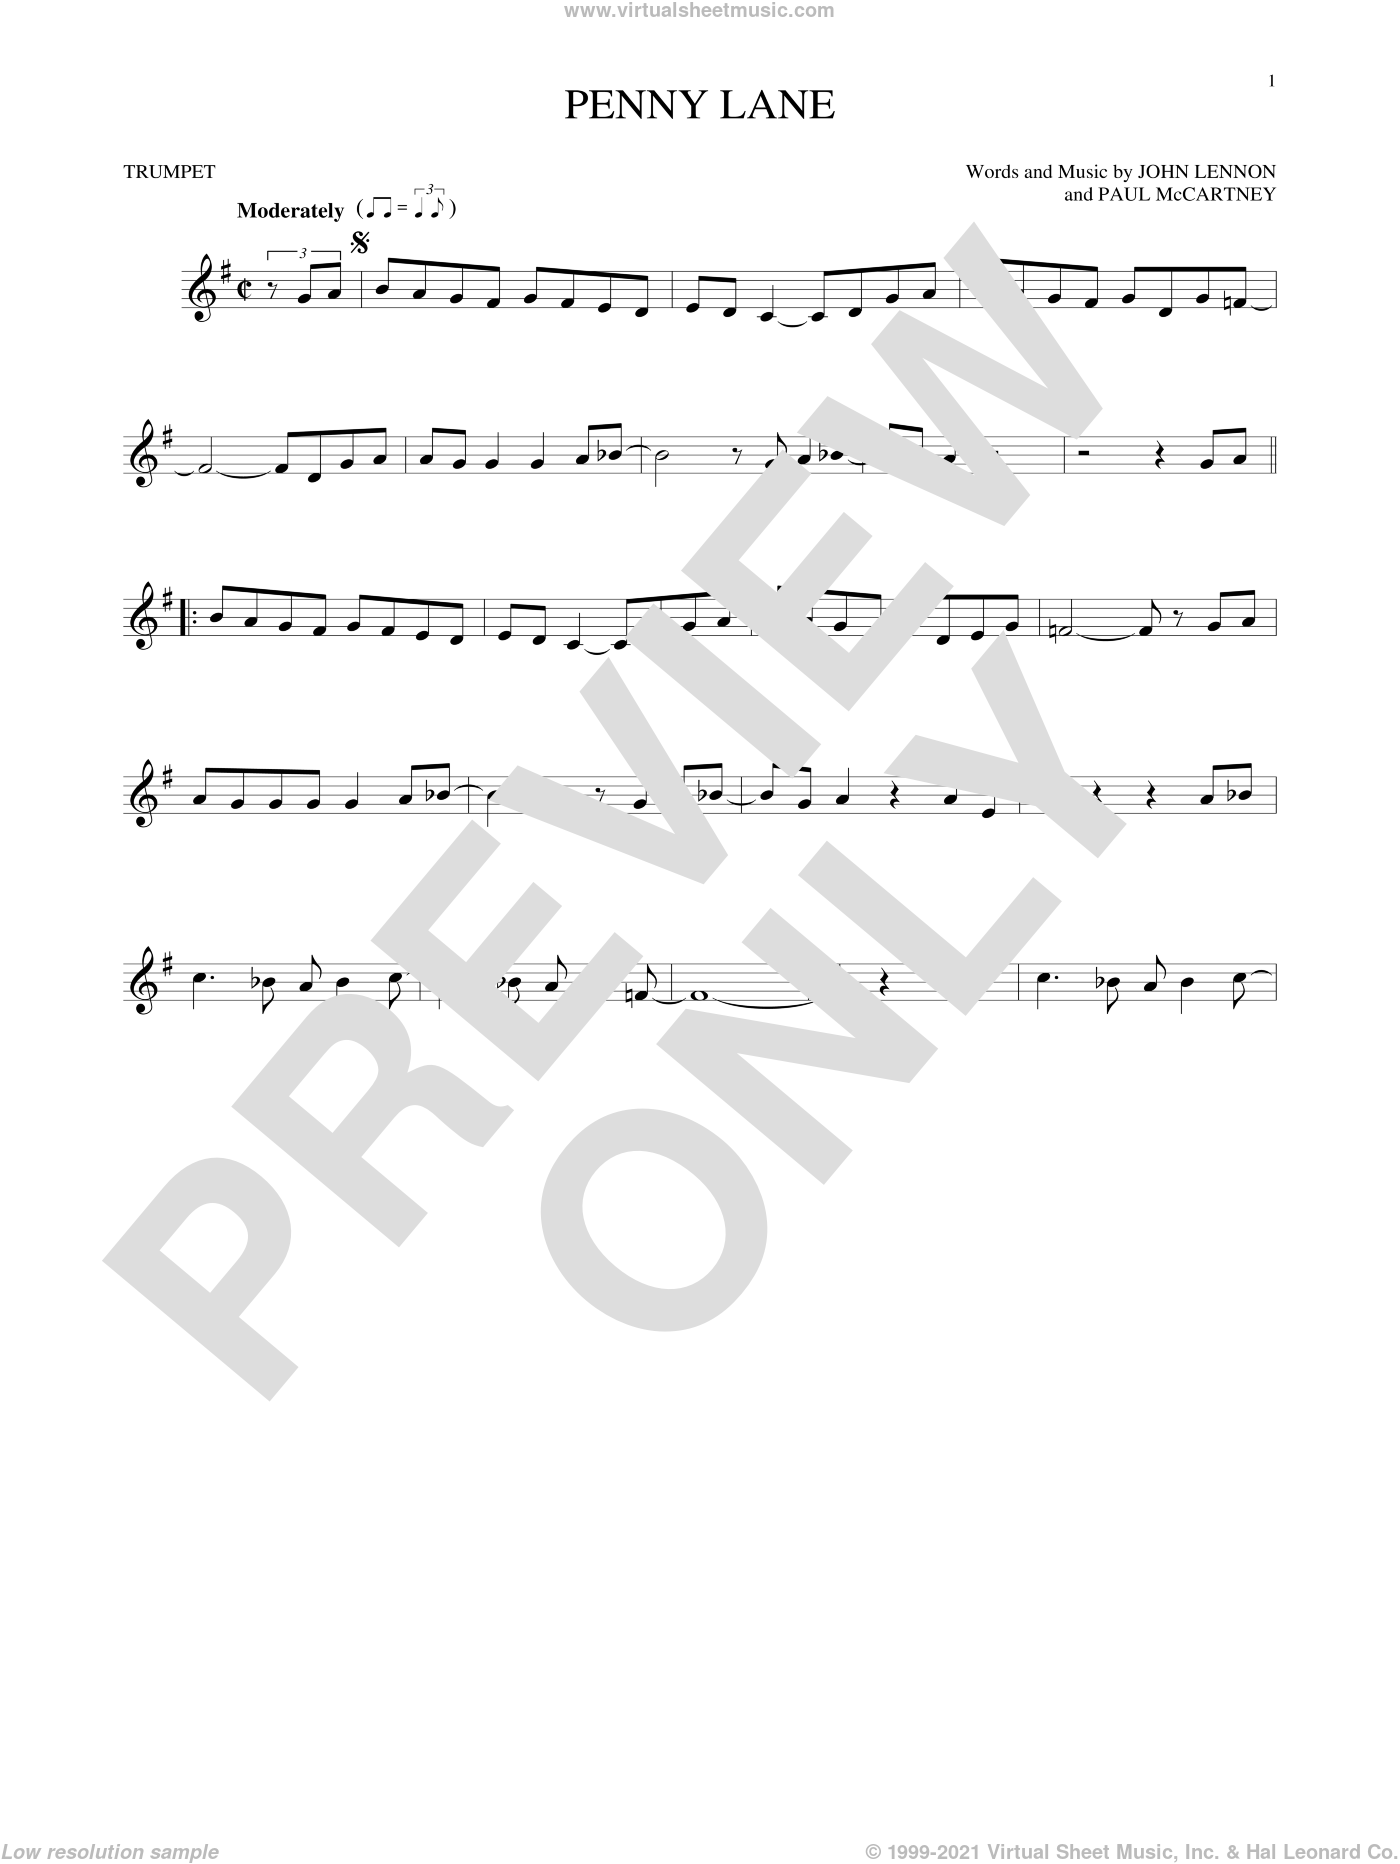 Penny Lane sheet music for trumpet solo by The Beatles, John Lennon and Paul McCartney, intermediate skill level